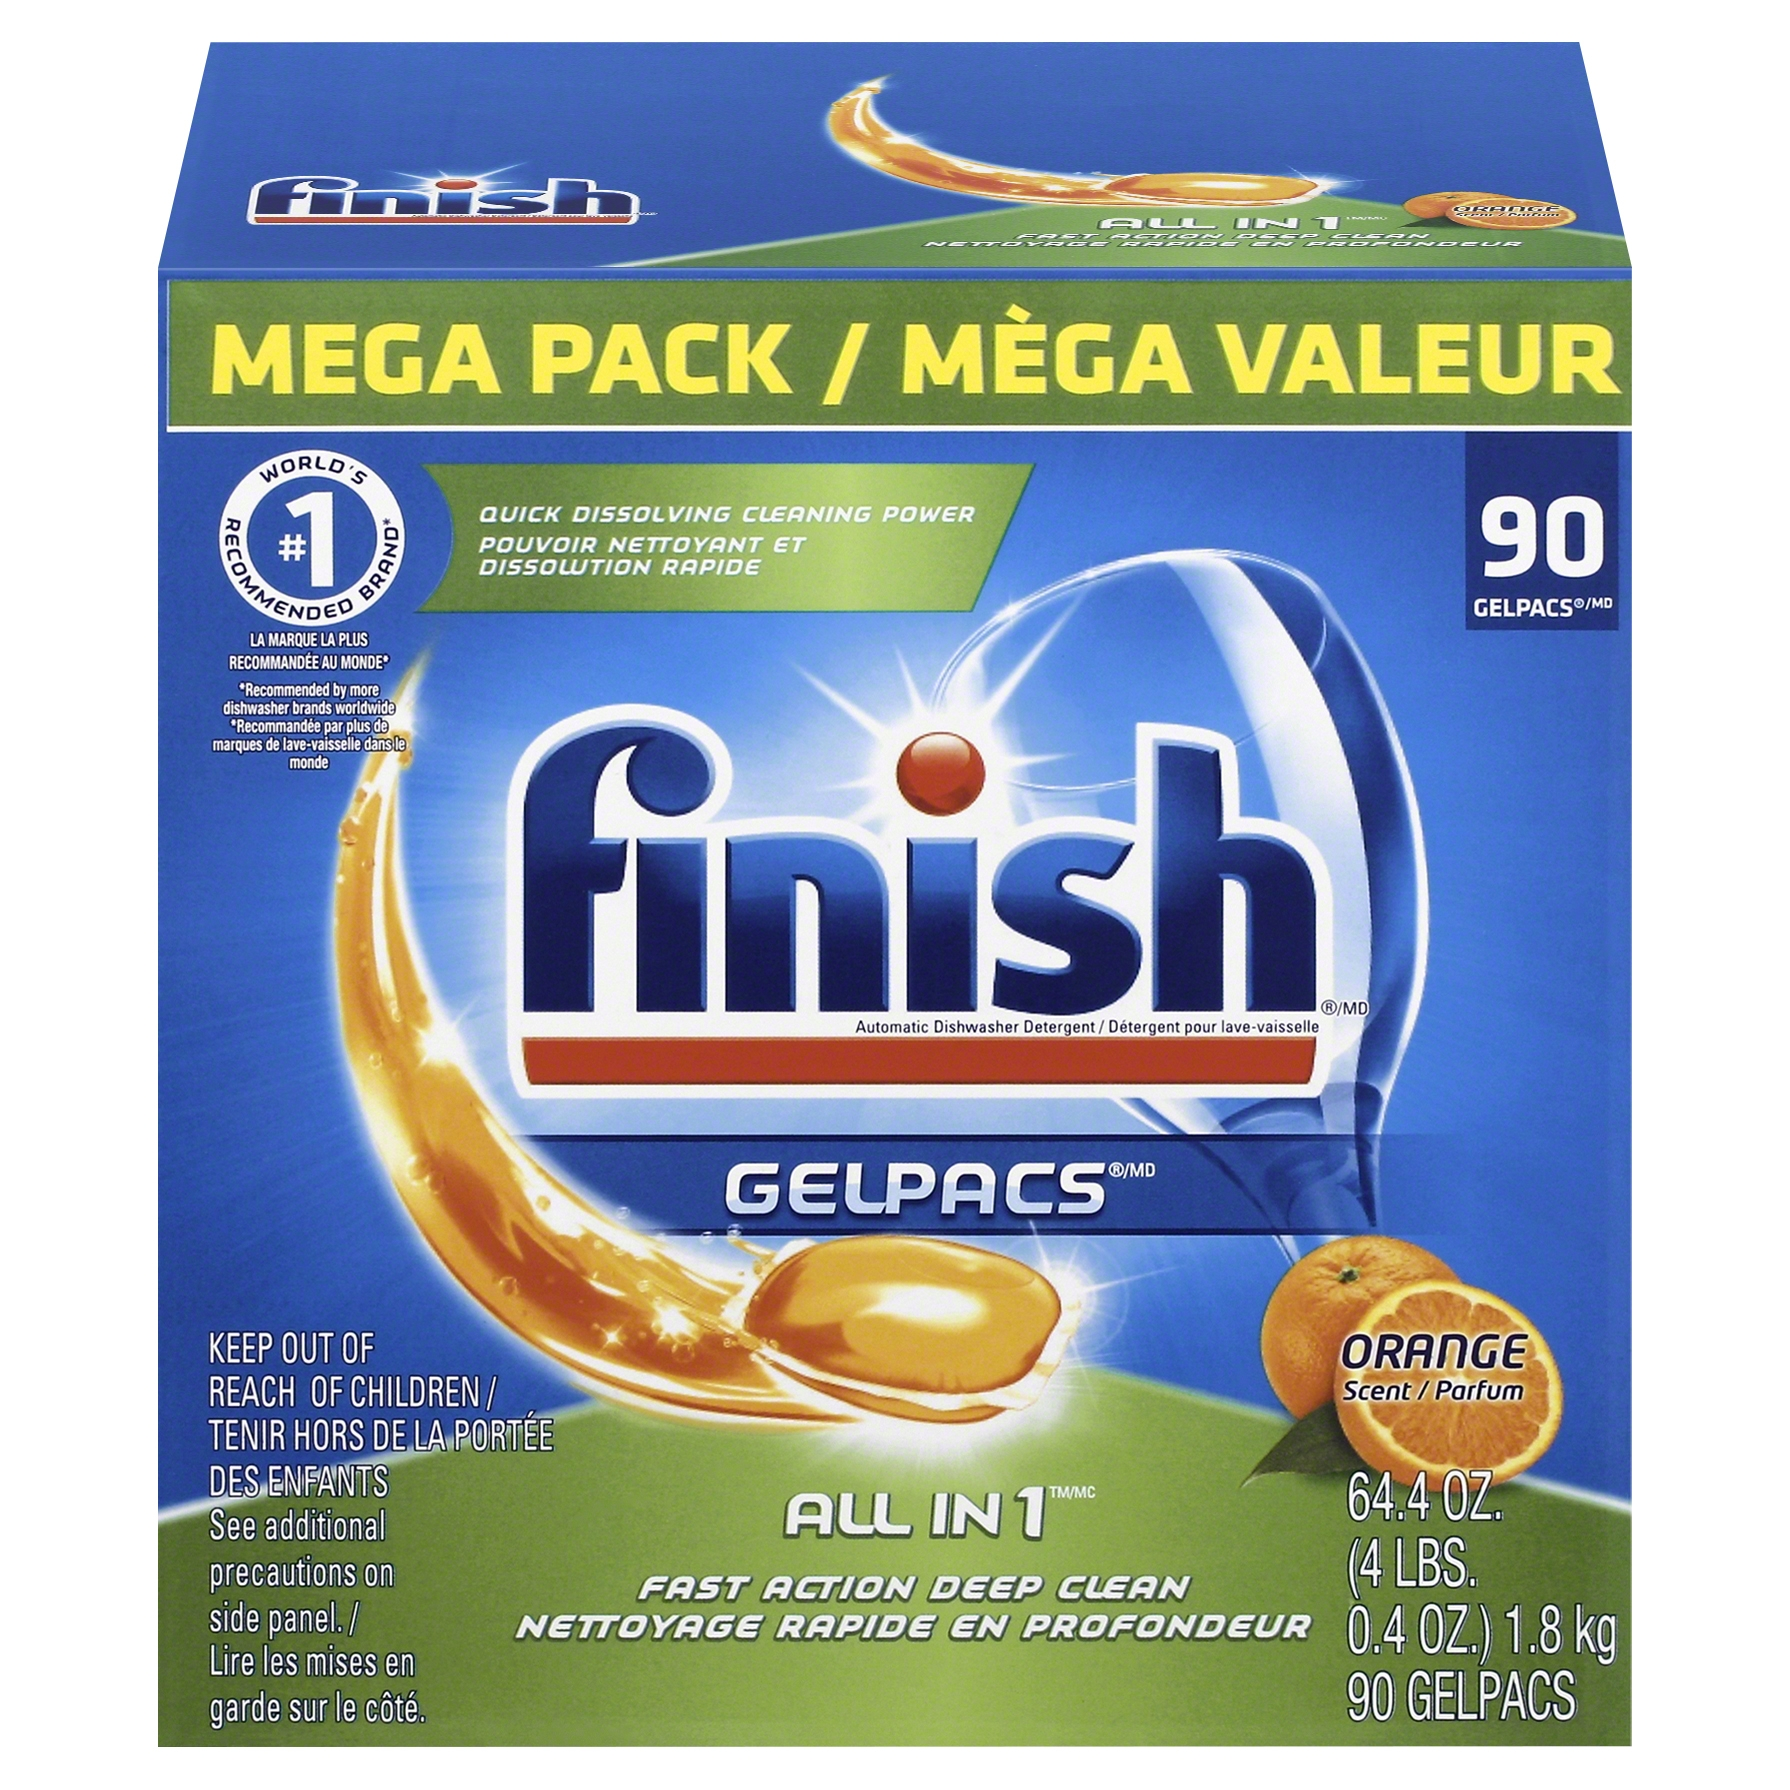 Finish Gelpacs Dishwasher Detergent, Orange Scent, 90 Count